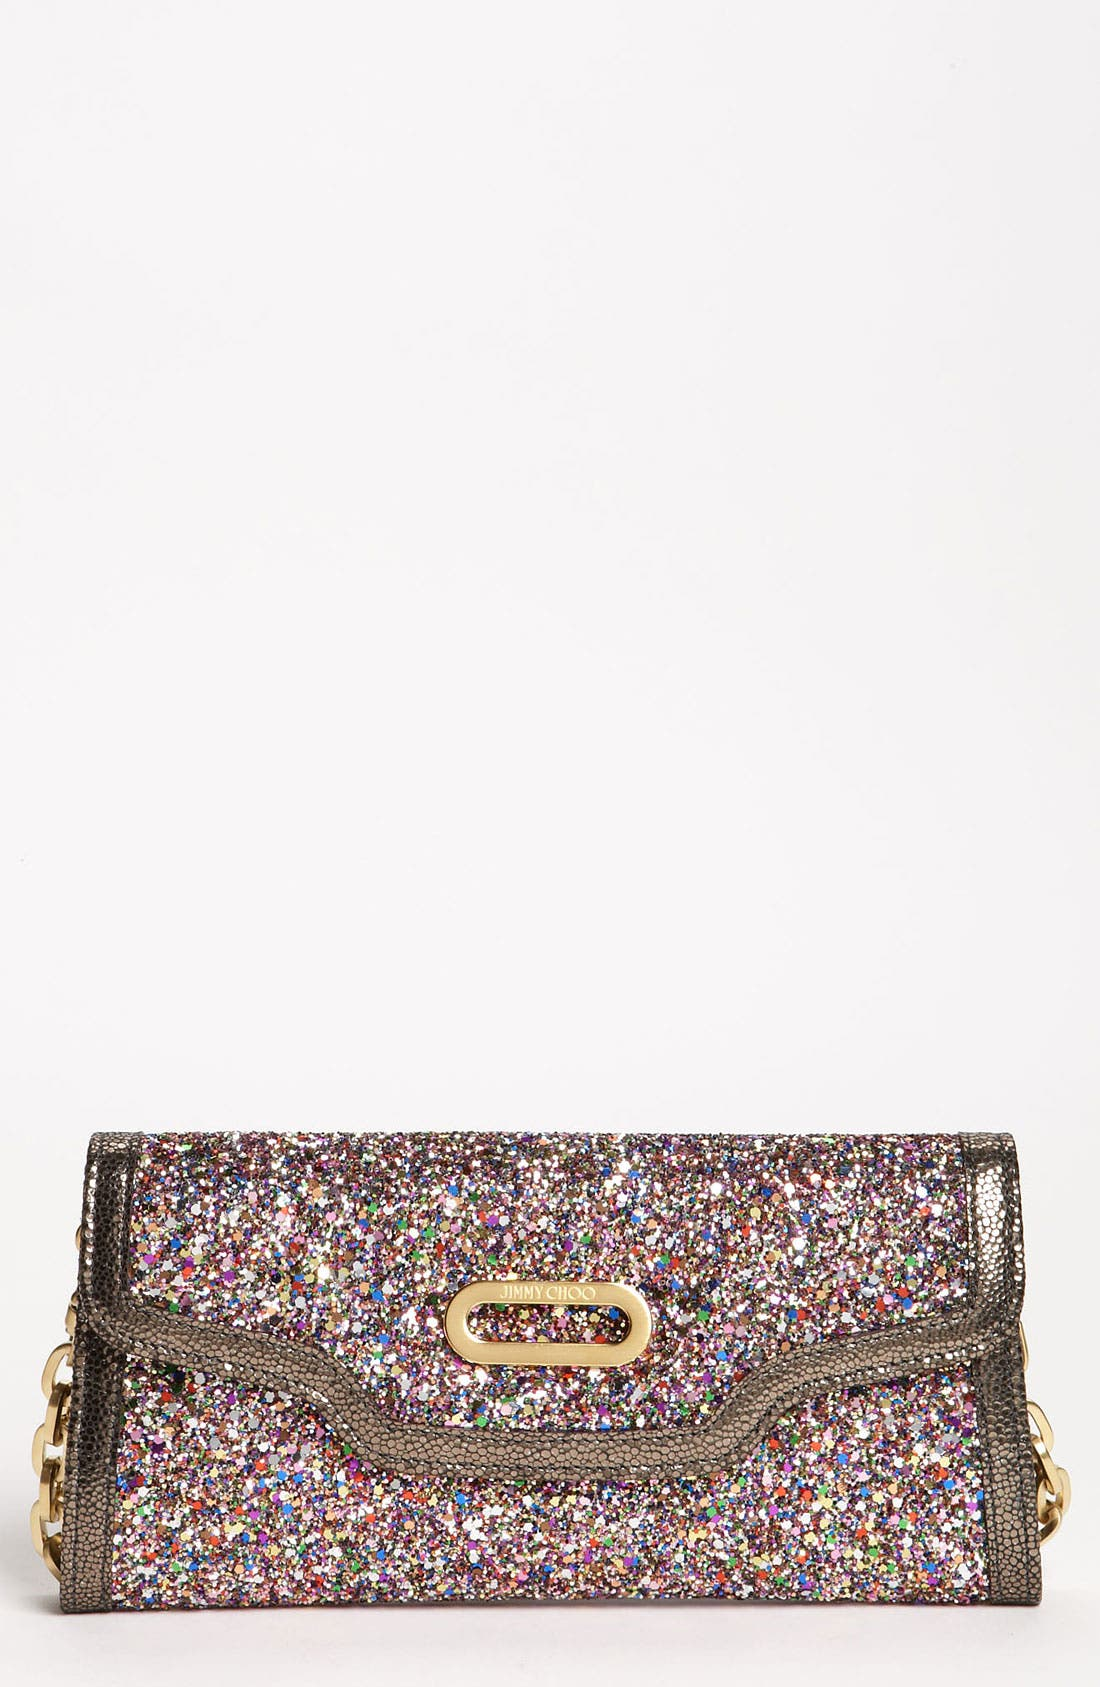 Main Image - Jimmy Choo Glitter Clutch